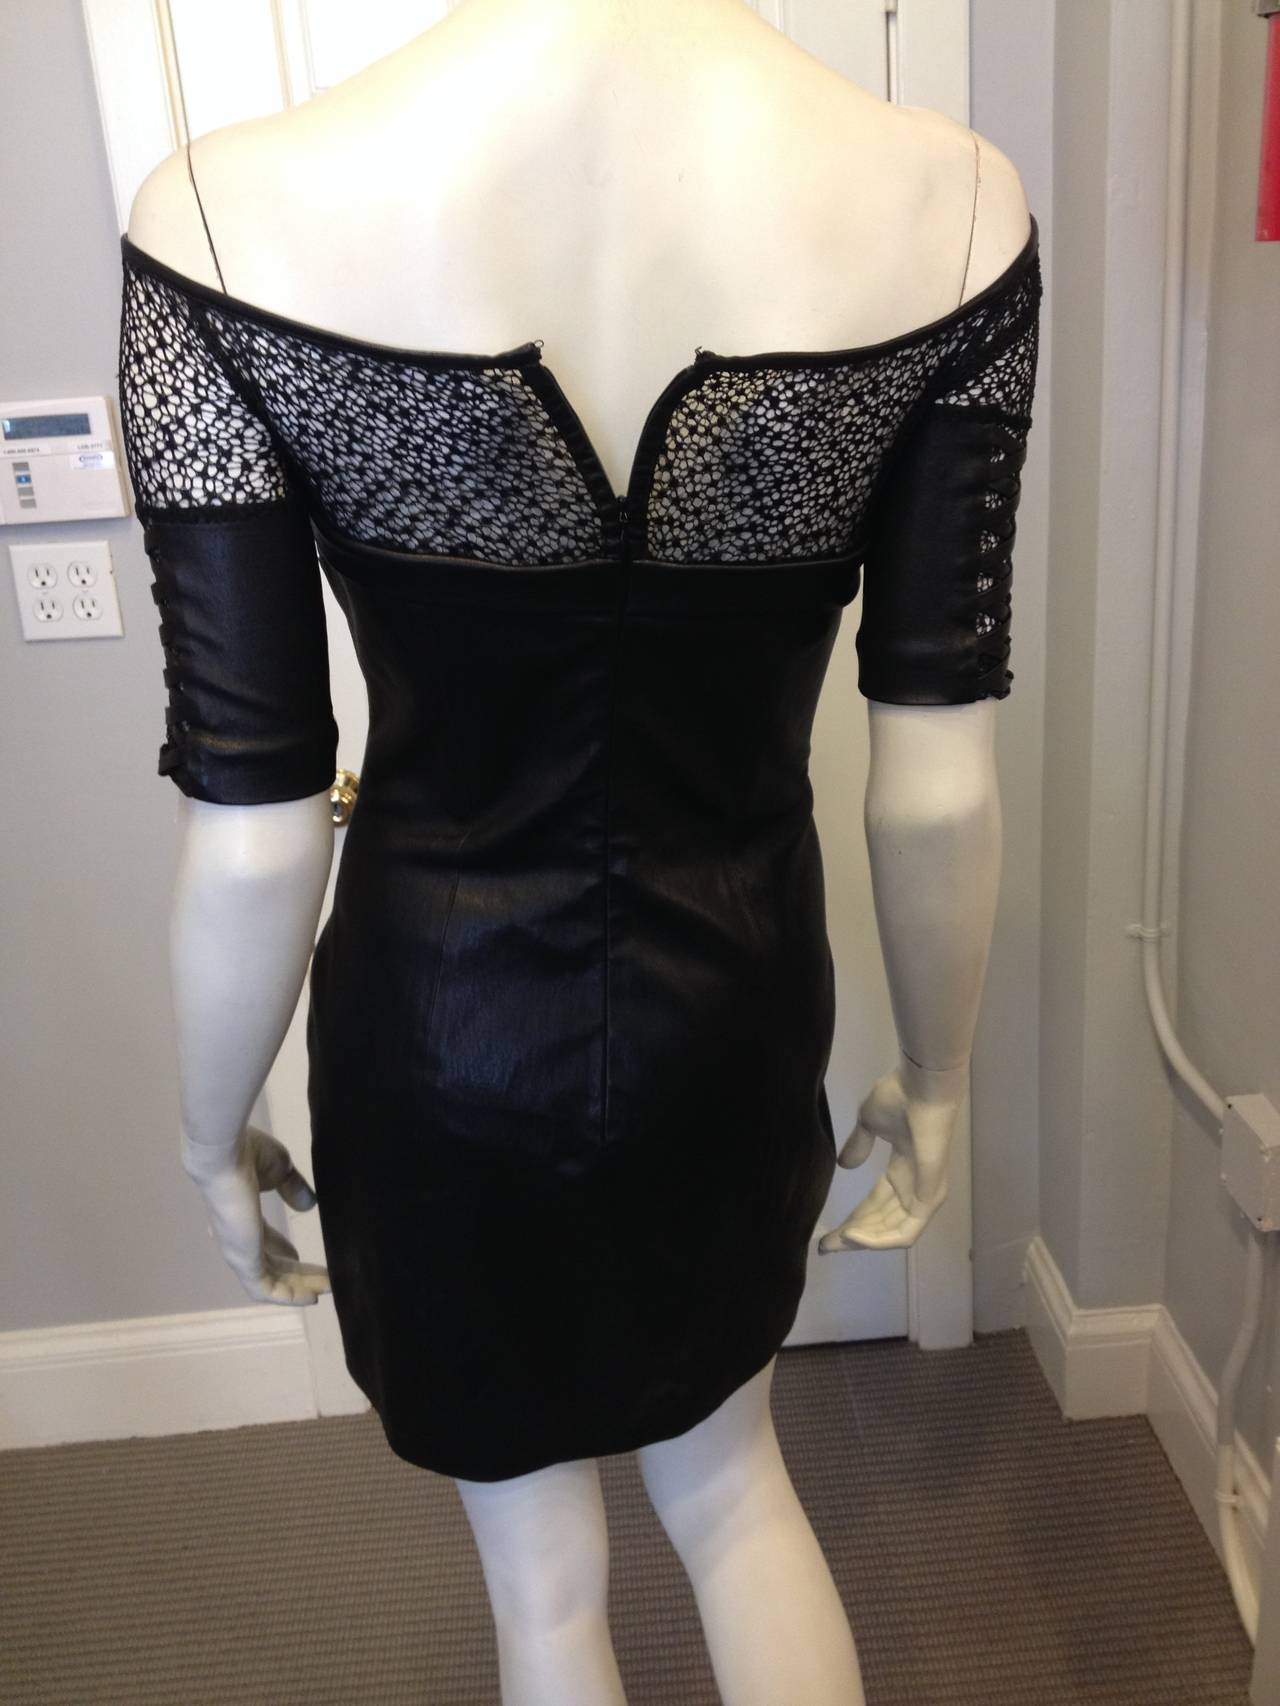 Kevork Kiledjian Black Leather and Lace Dress 6